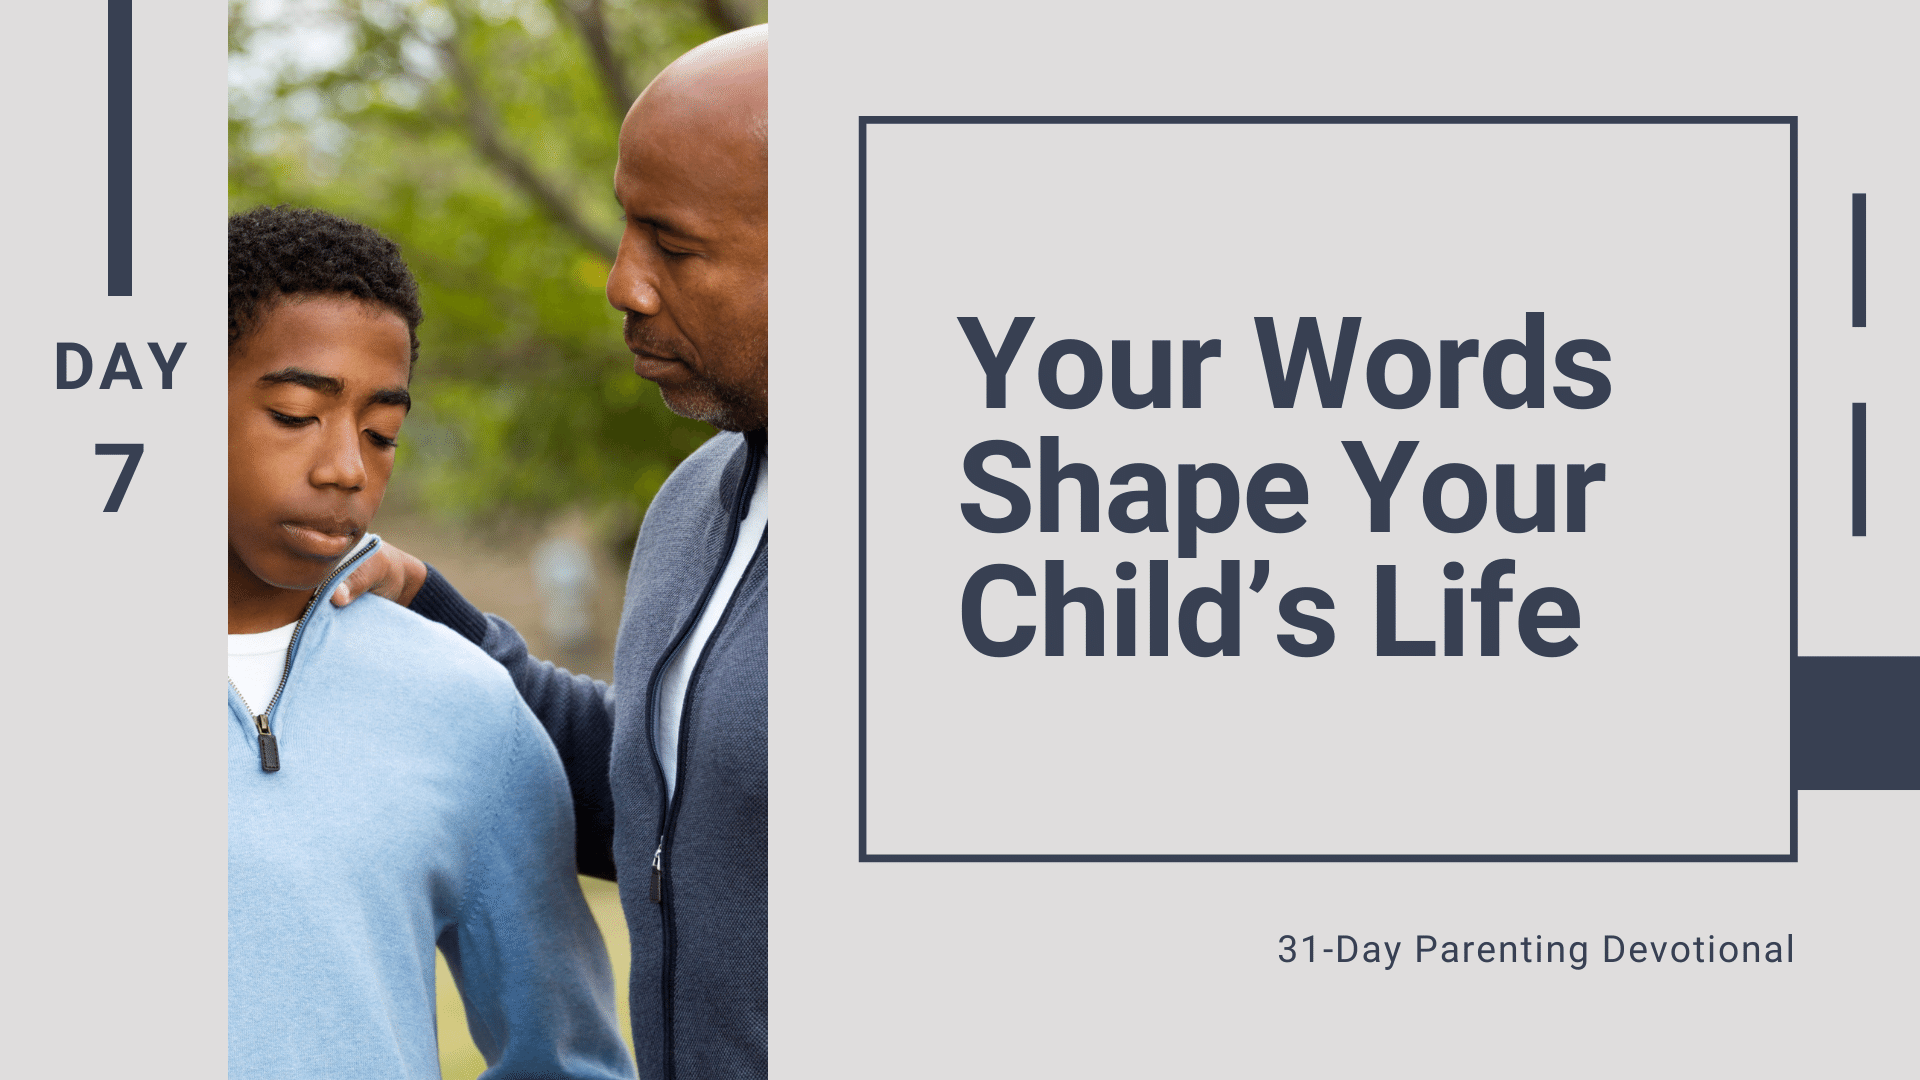 7 Your Words Shape Your Child's Life, Day 7